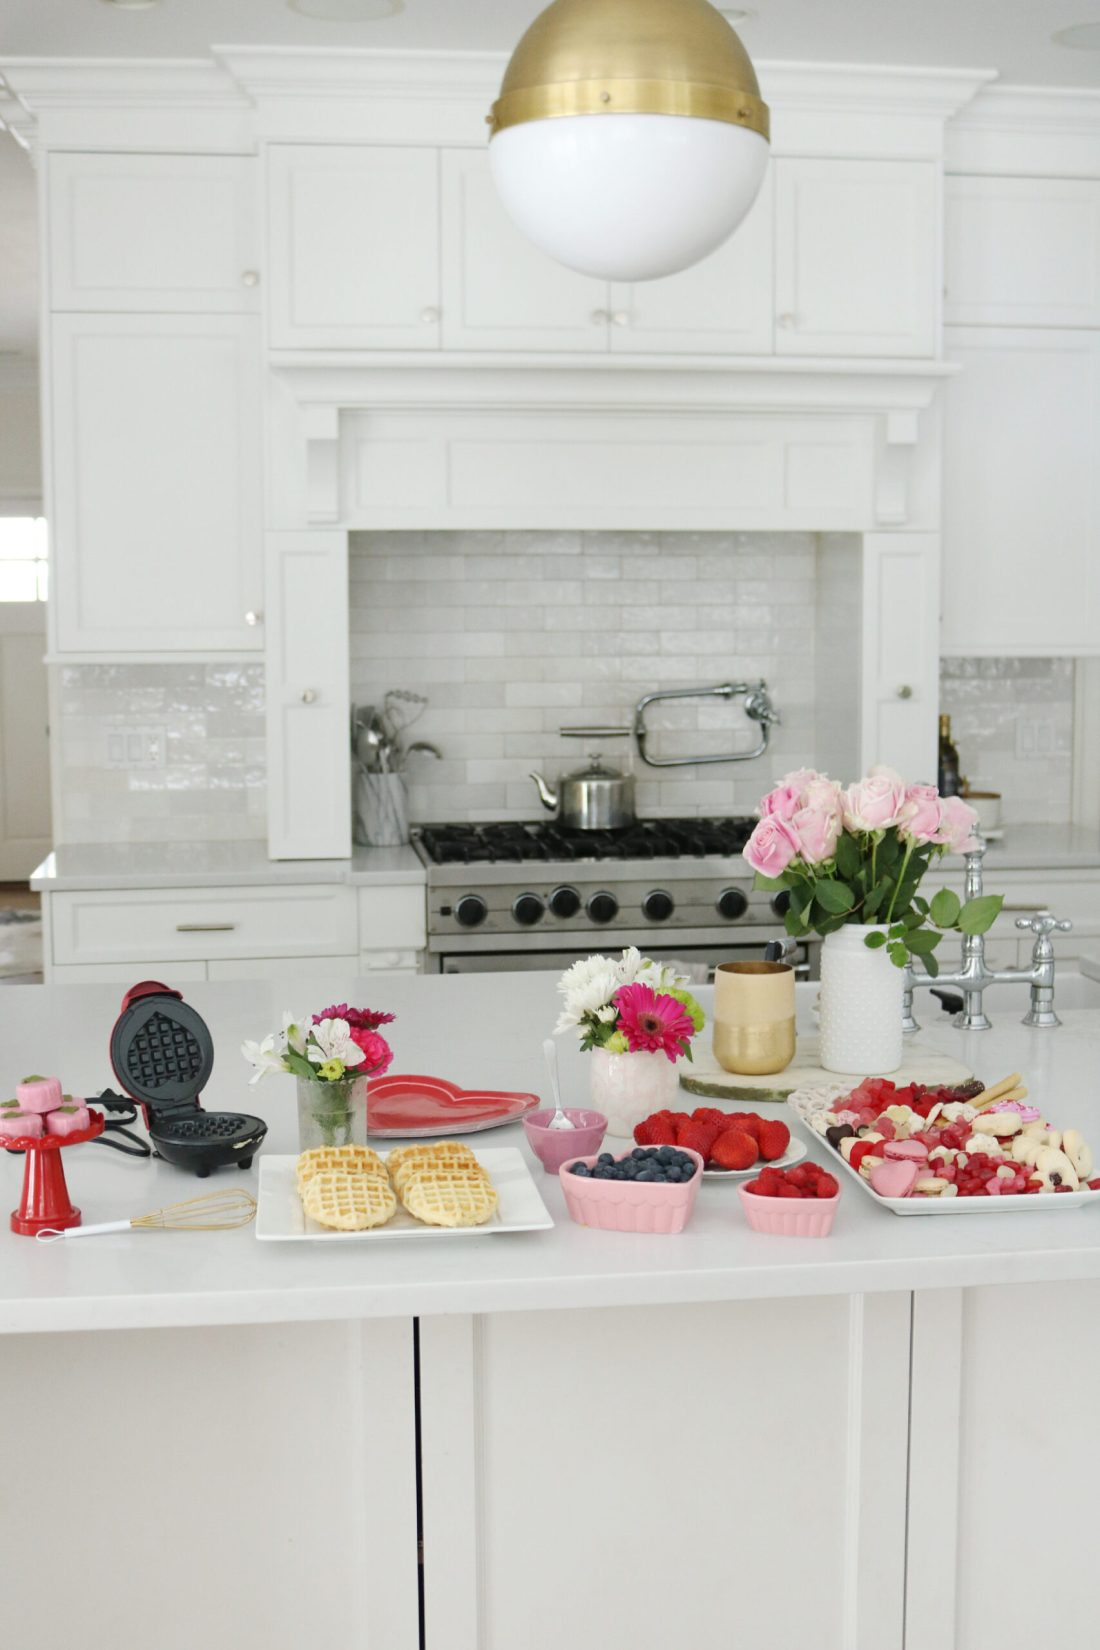 Bring Valentine's Day Home this year!  Put together a Valentine's waffle bar and breakfast of hearts and a charcuterie board with heart shaped chocolate, cinnamon lips and macrons!  So many fun Valentine's Day ideas to share with your family || Darling Darleen Top Lifestyle Blogger #ctblogger #darlingdarleen #valentinesday